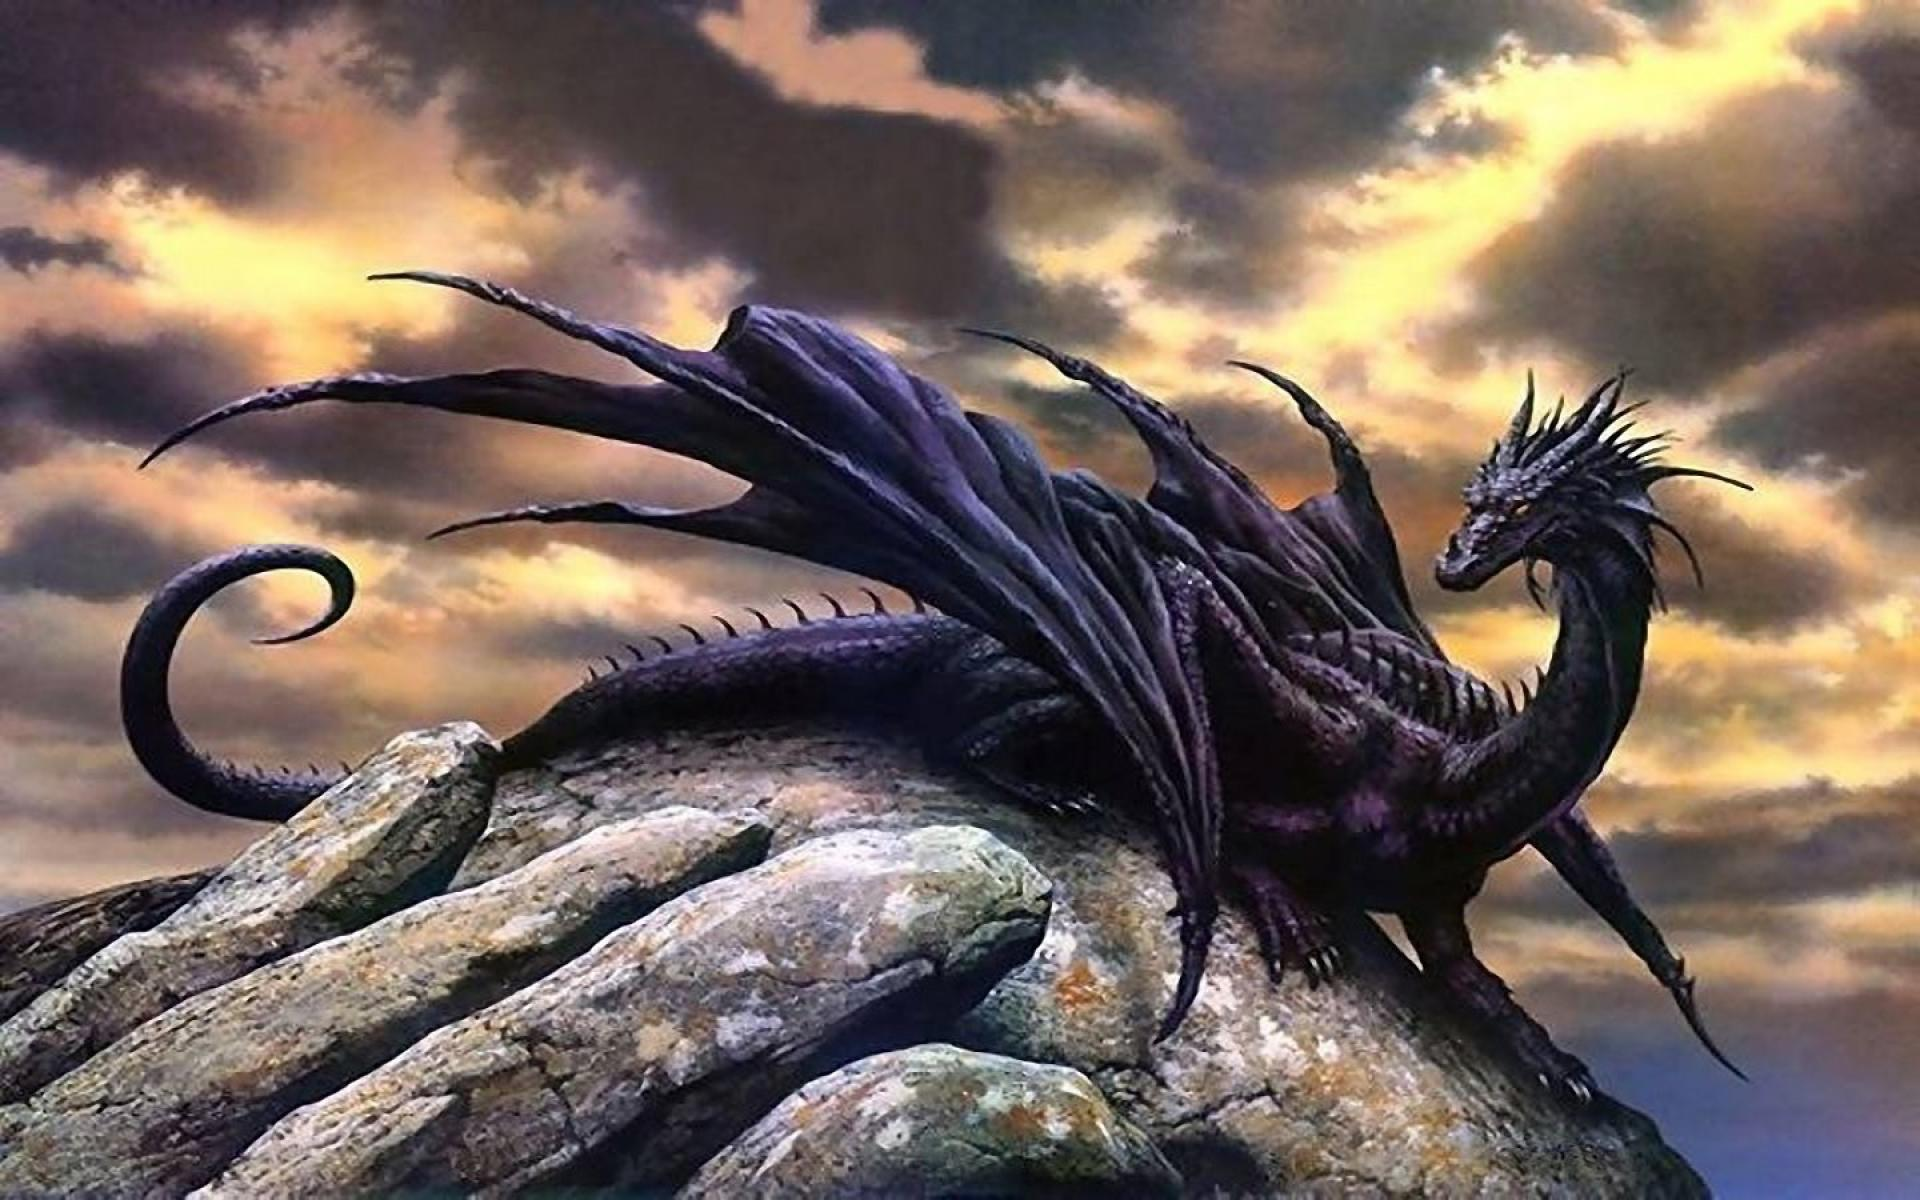 Dragon 1920x1200 Wallpapers 1920x1200 Wallpapers Pictures 1920x1200